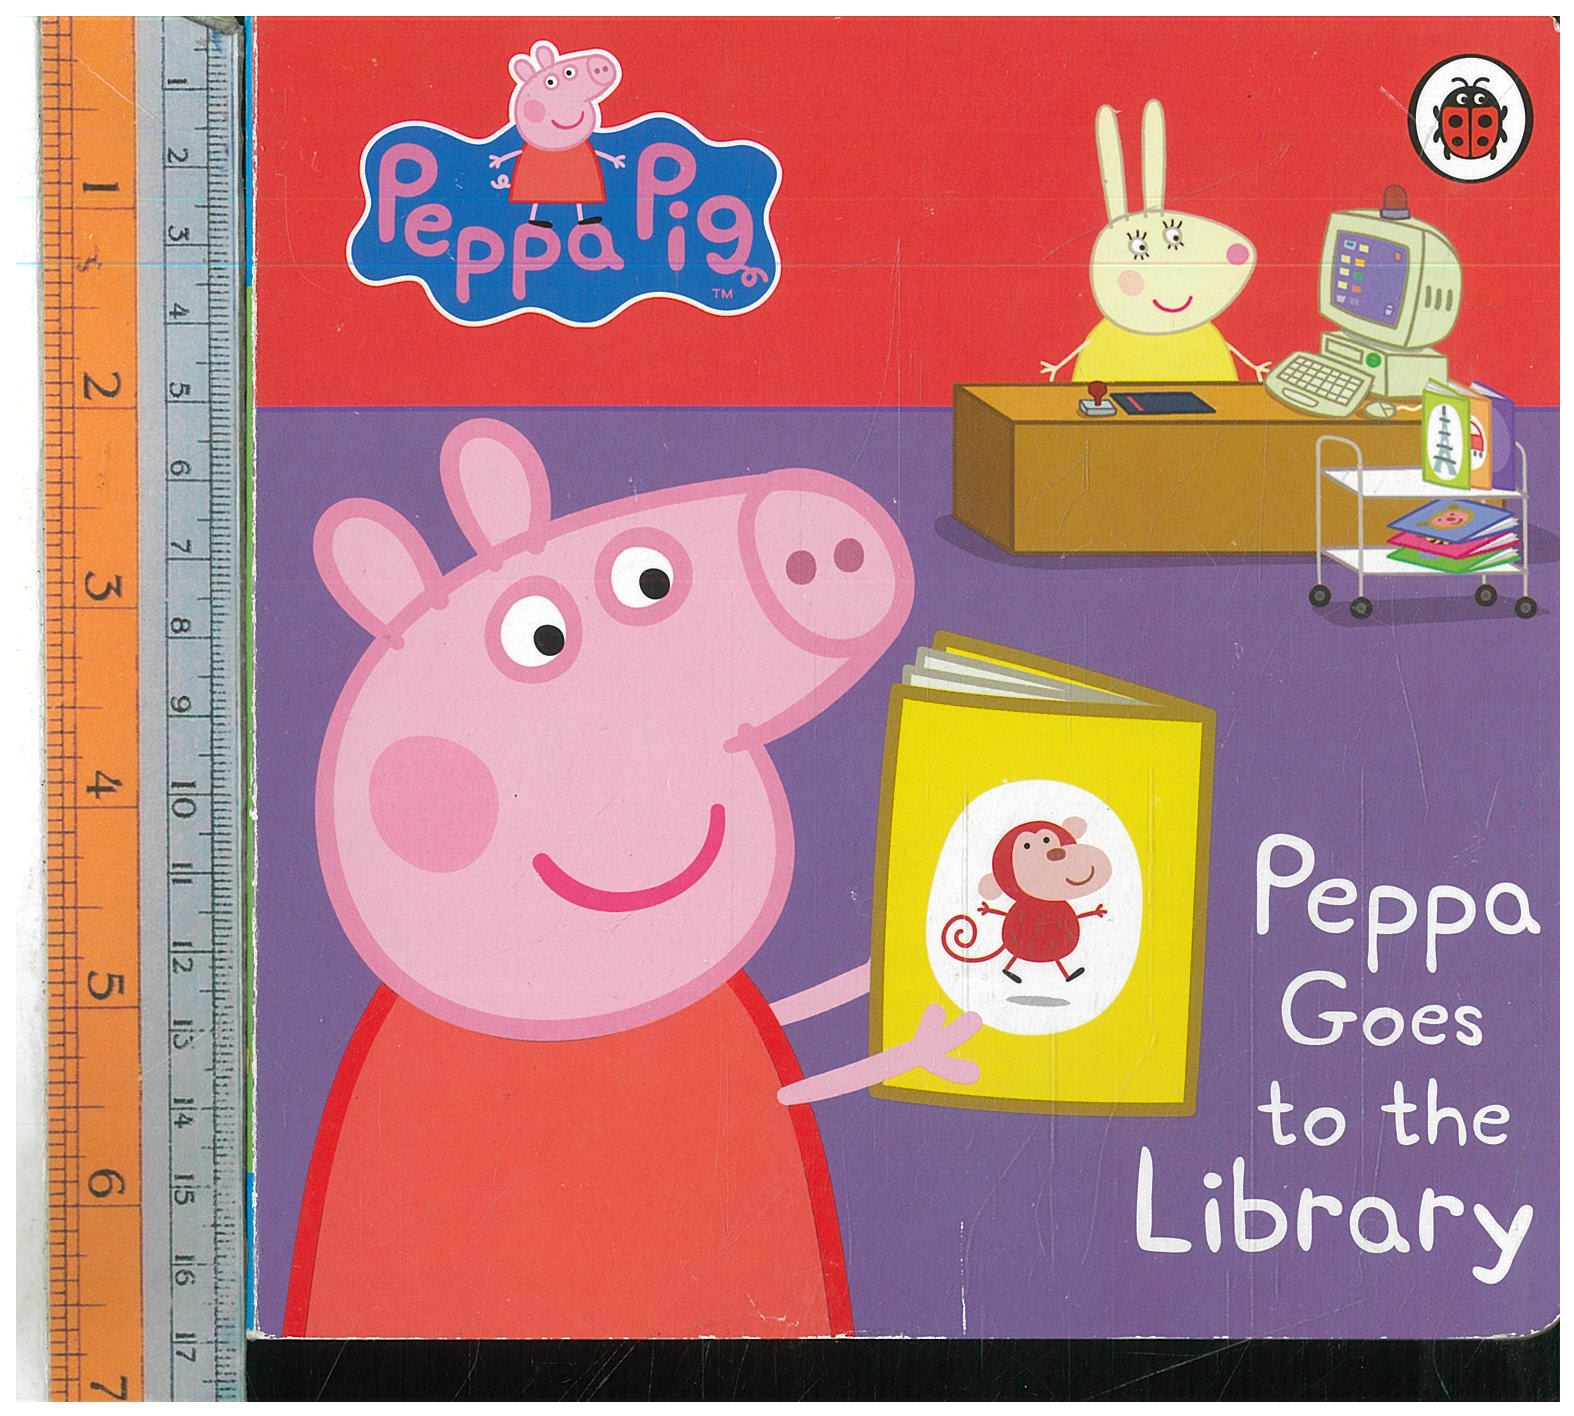 Peppa Goes to Library